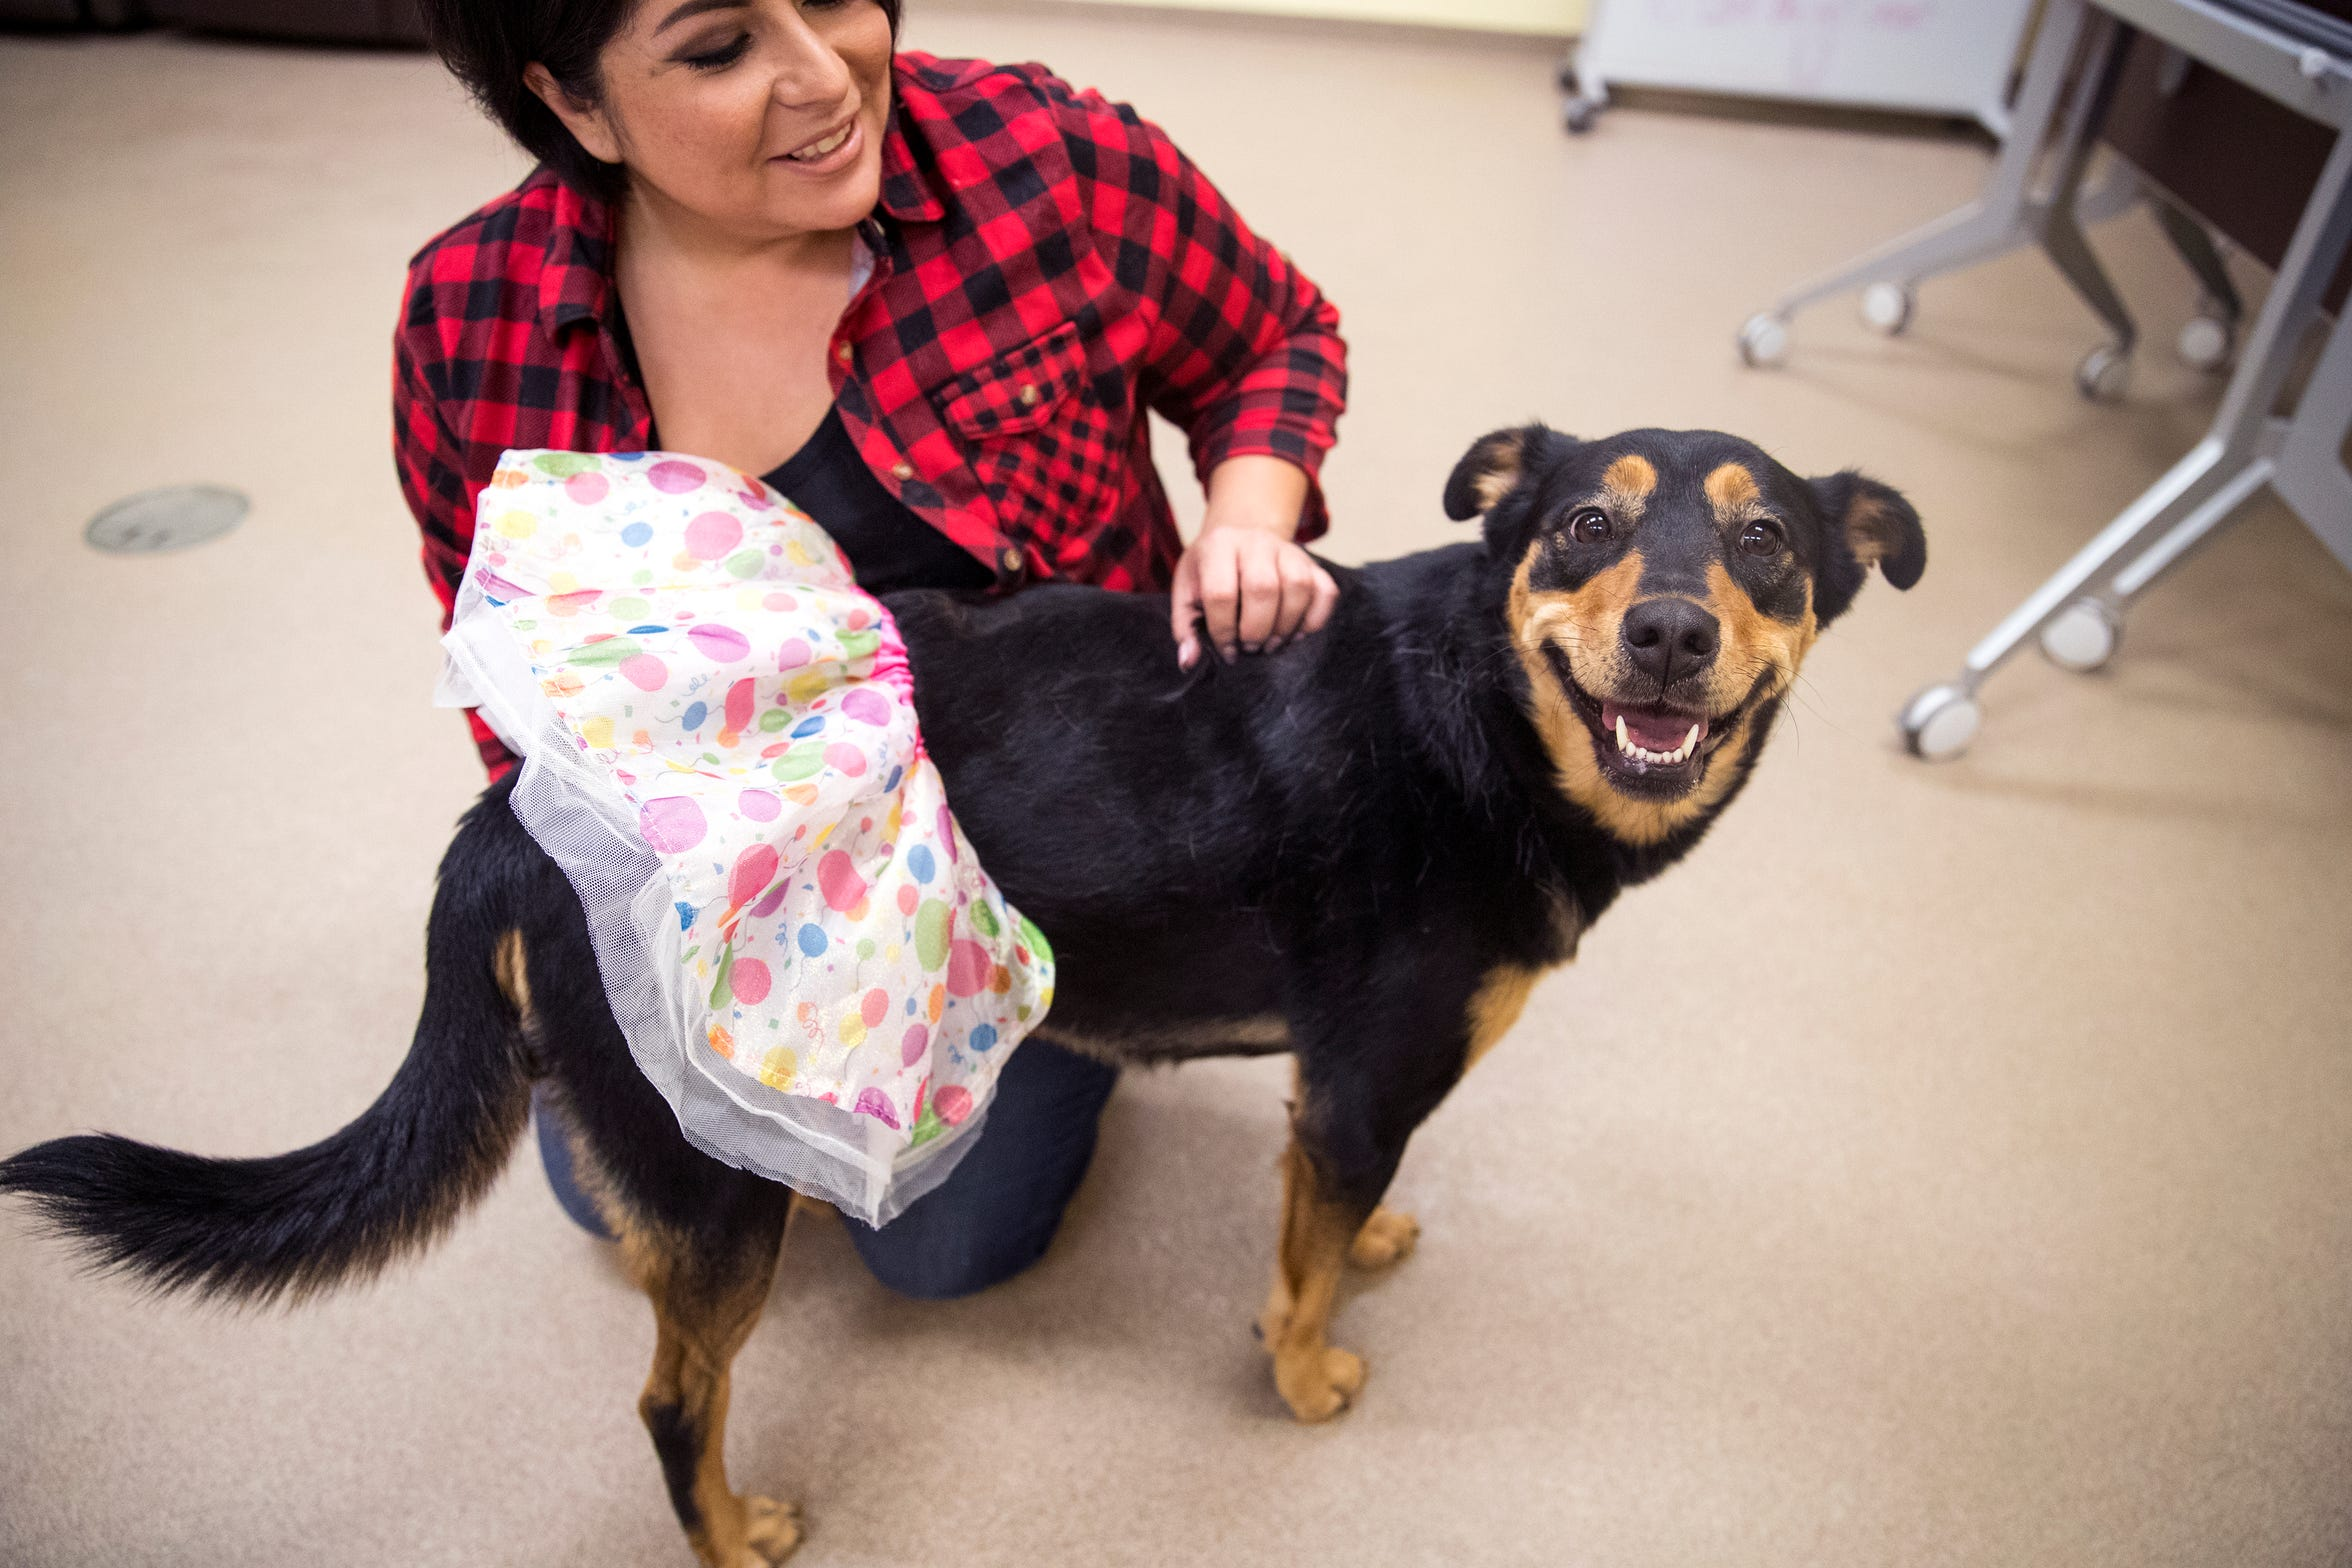 Reese is one of several dogs at the Gulf Coast Humane Society looking for a forever home. She is almost four years old, has been in the shelter for six months and is a major lap dog.